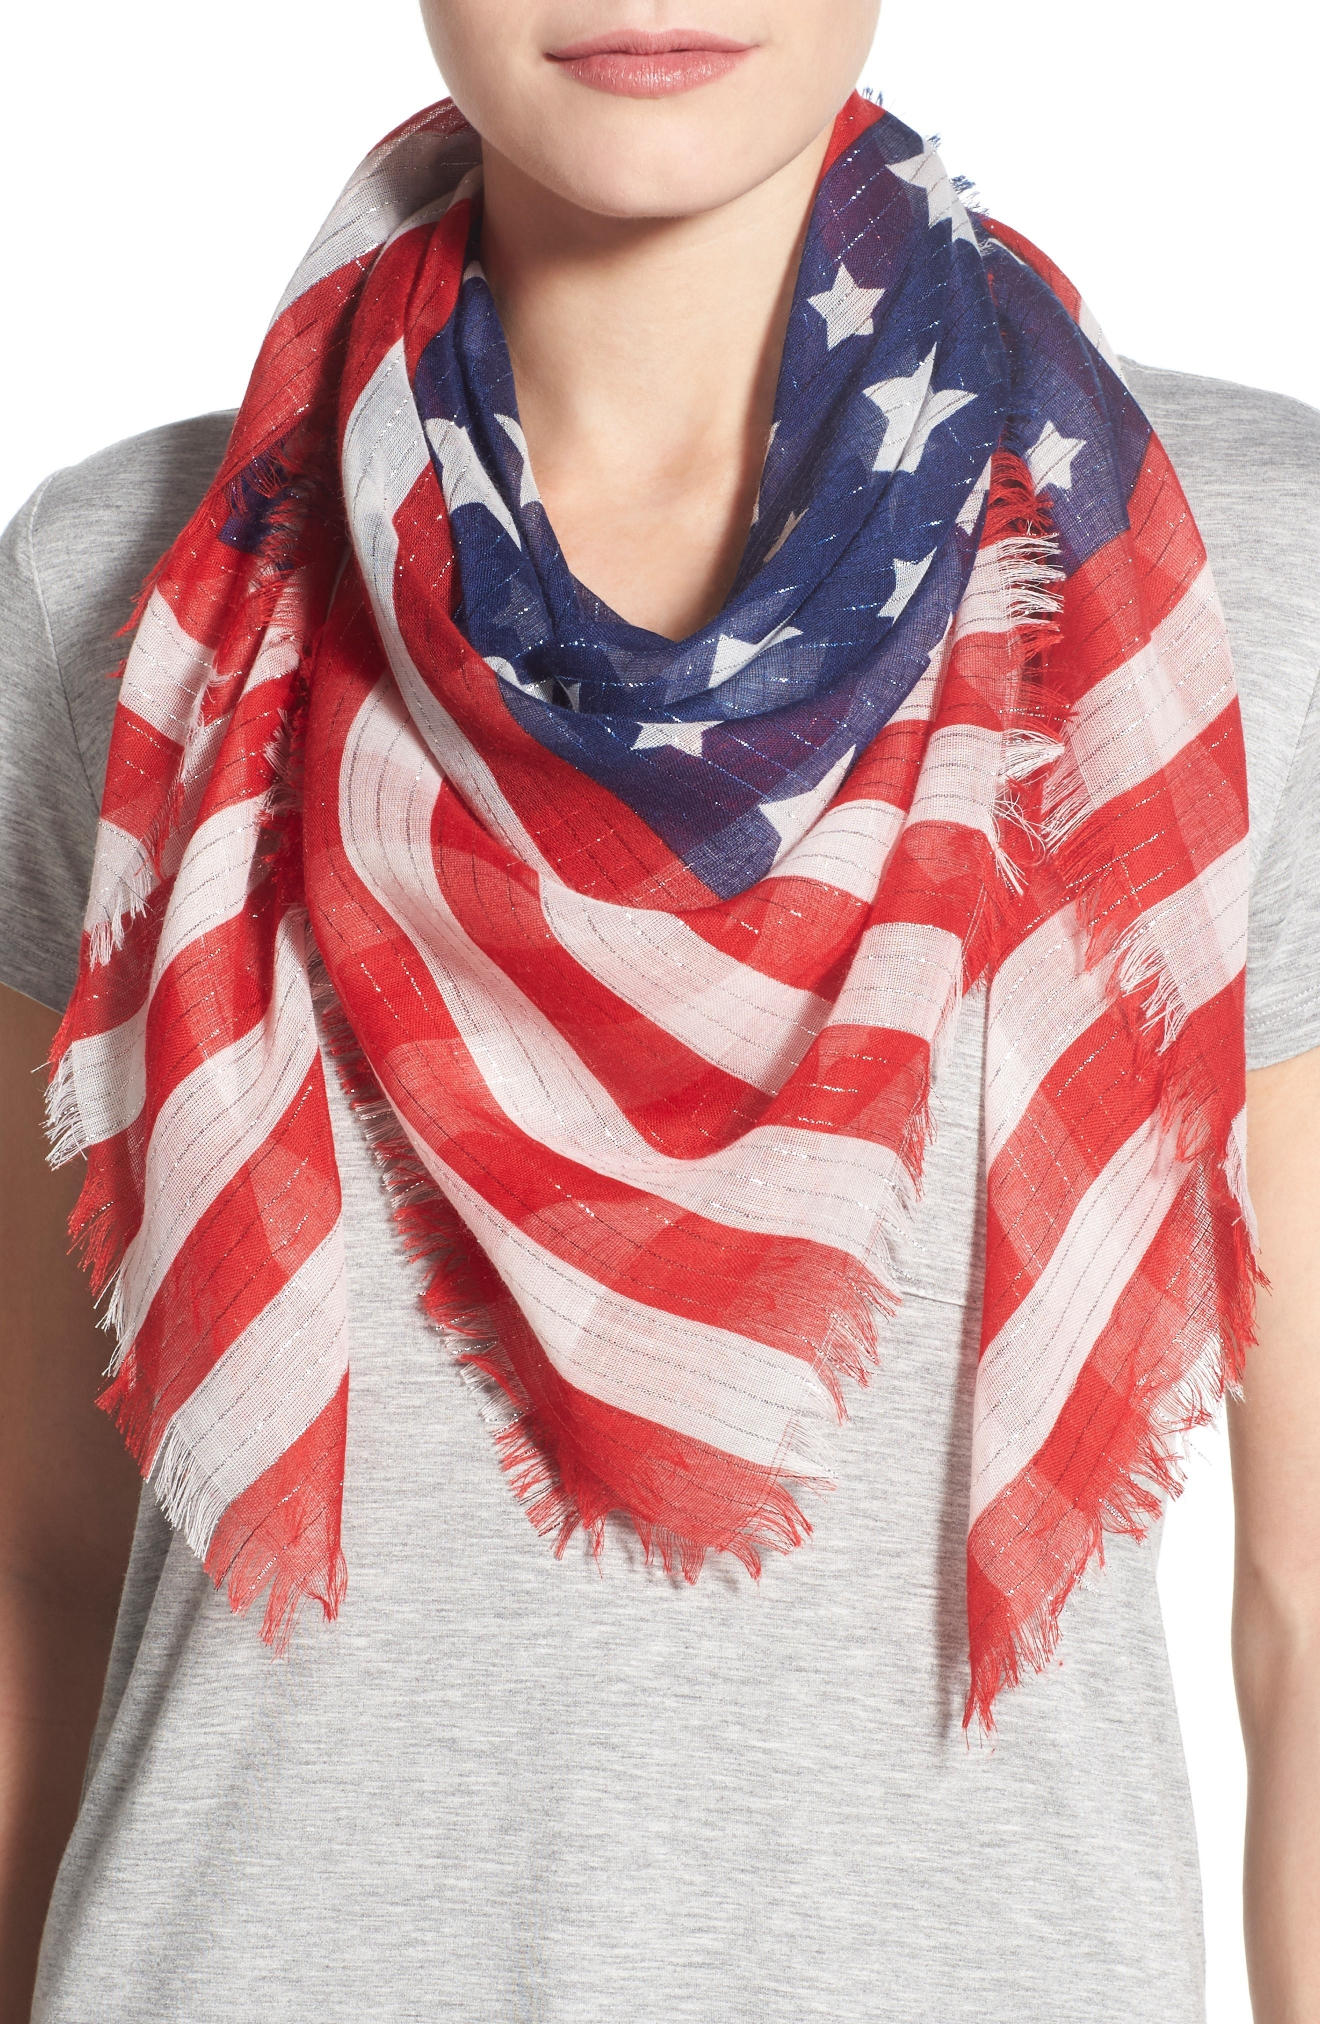 A light scarf is the perfect accessory to amp up any lackluster outfit without adding too many layers to the equation. Collection XIIX 'Flag' Square Scarf, $32, shop.nordstrom.com (Image: Courtesy Nordstrom)